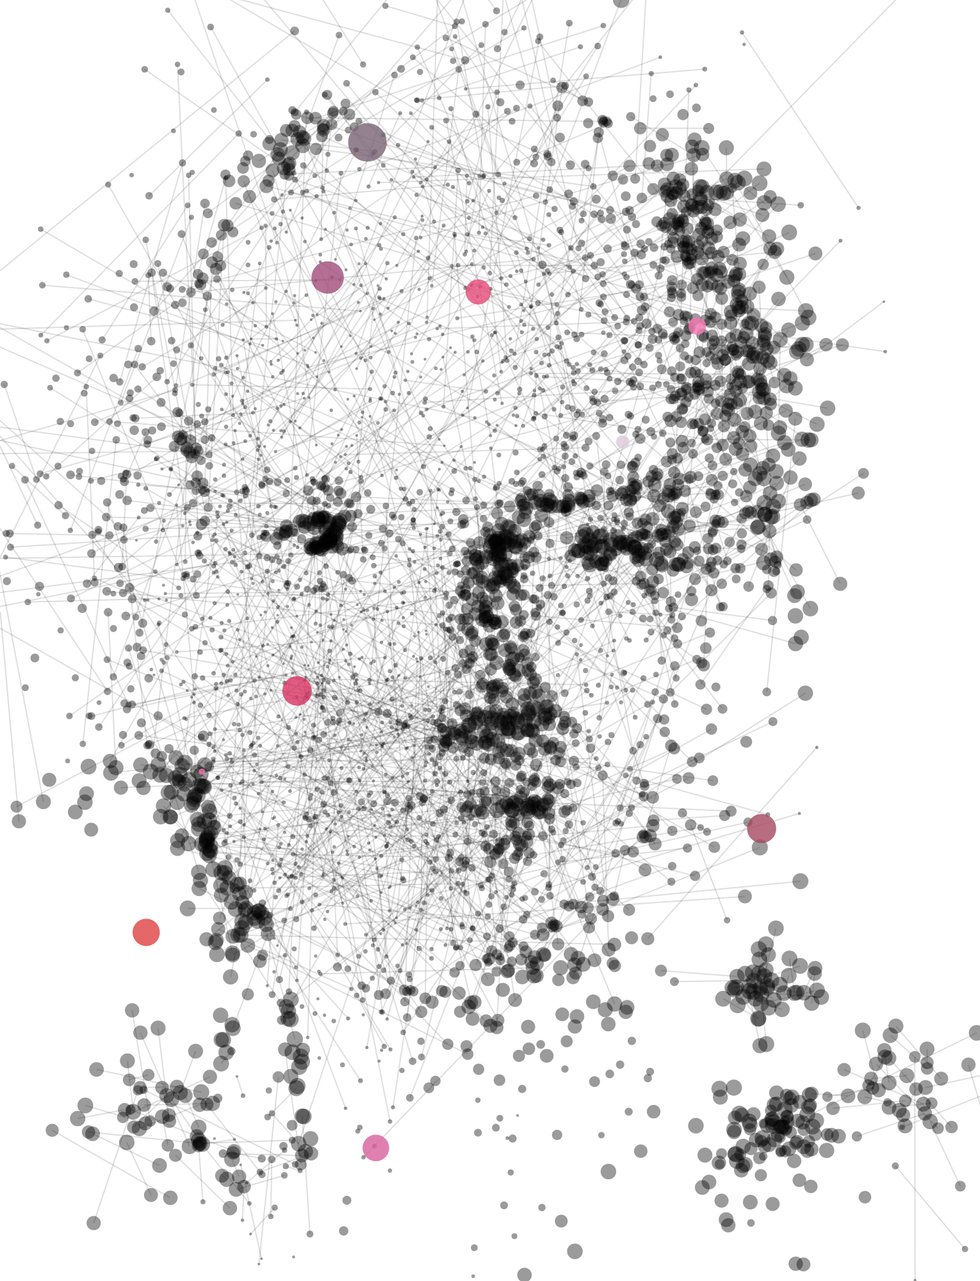 Illustration of Stuart Russell made of dots and lines.